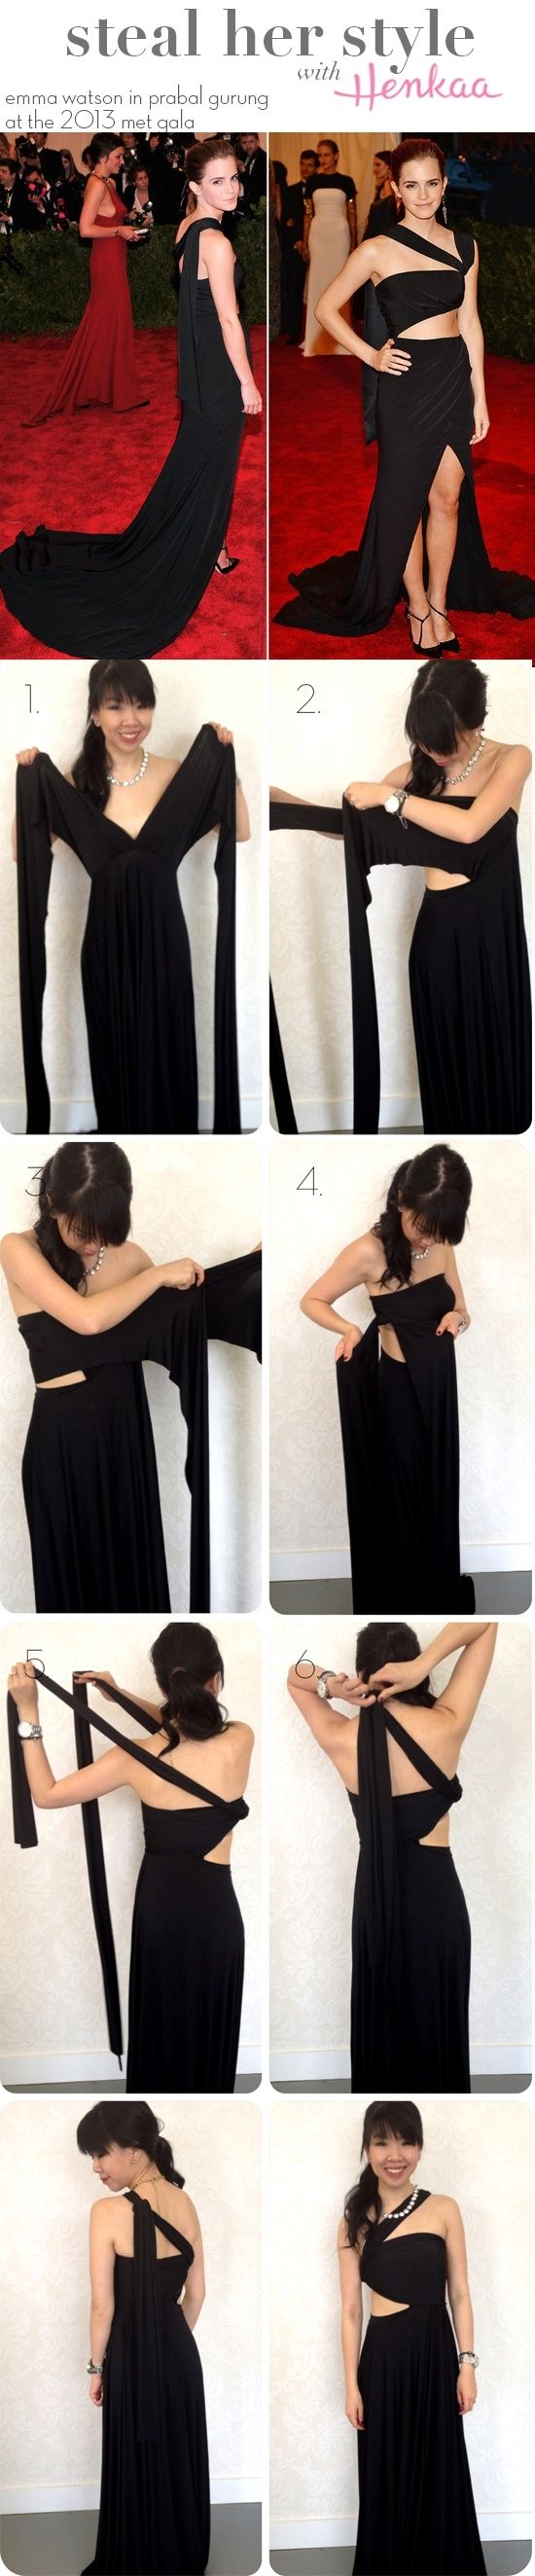 Steal Emma Watson's Style - Reuse that convertible dress by wrapping it in a red carpet ready cutout style! by Banphrionsa